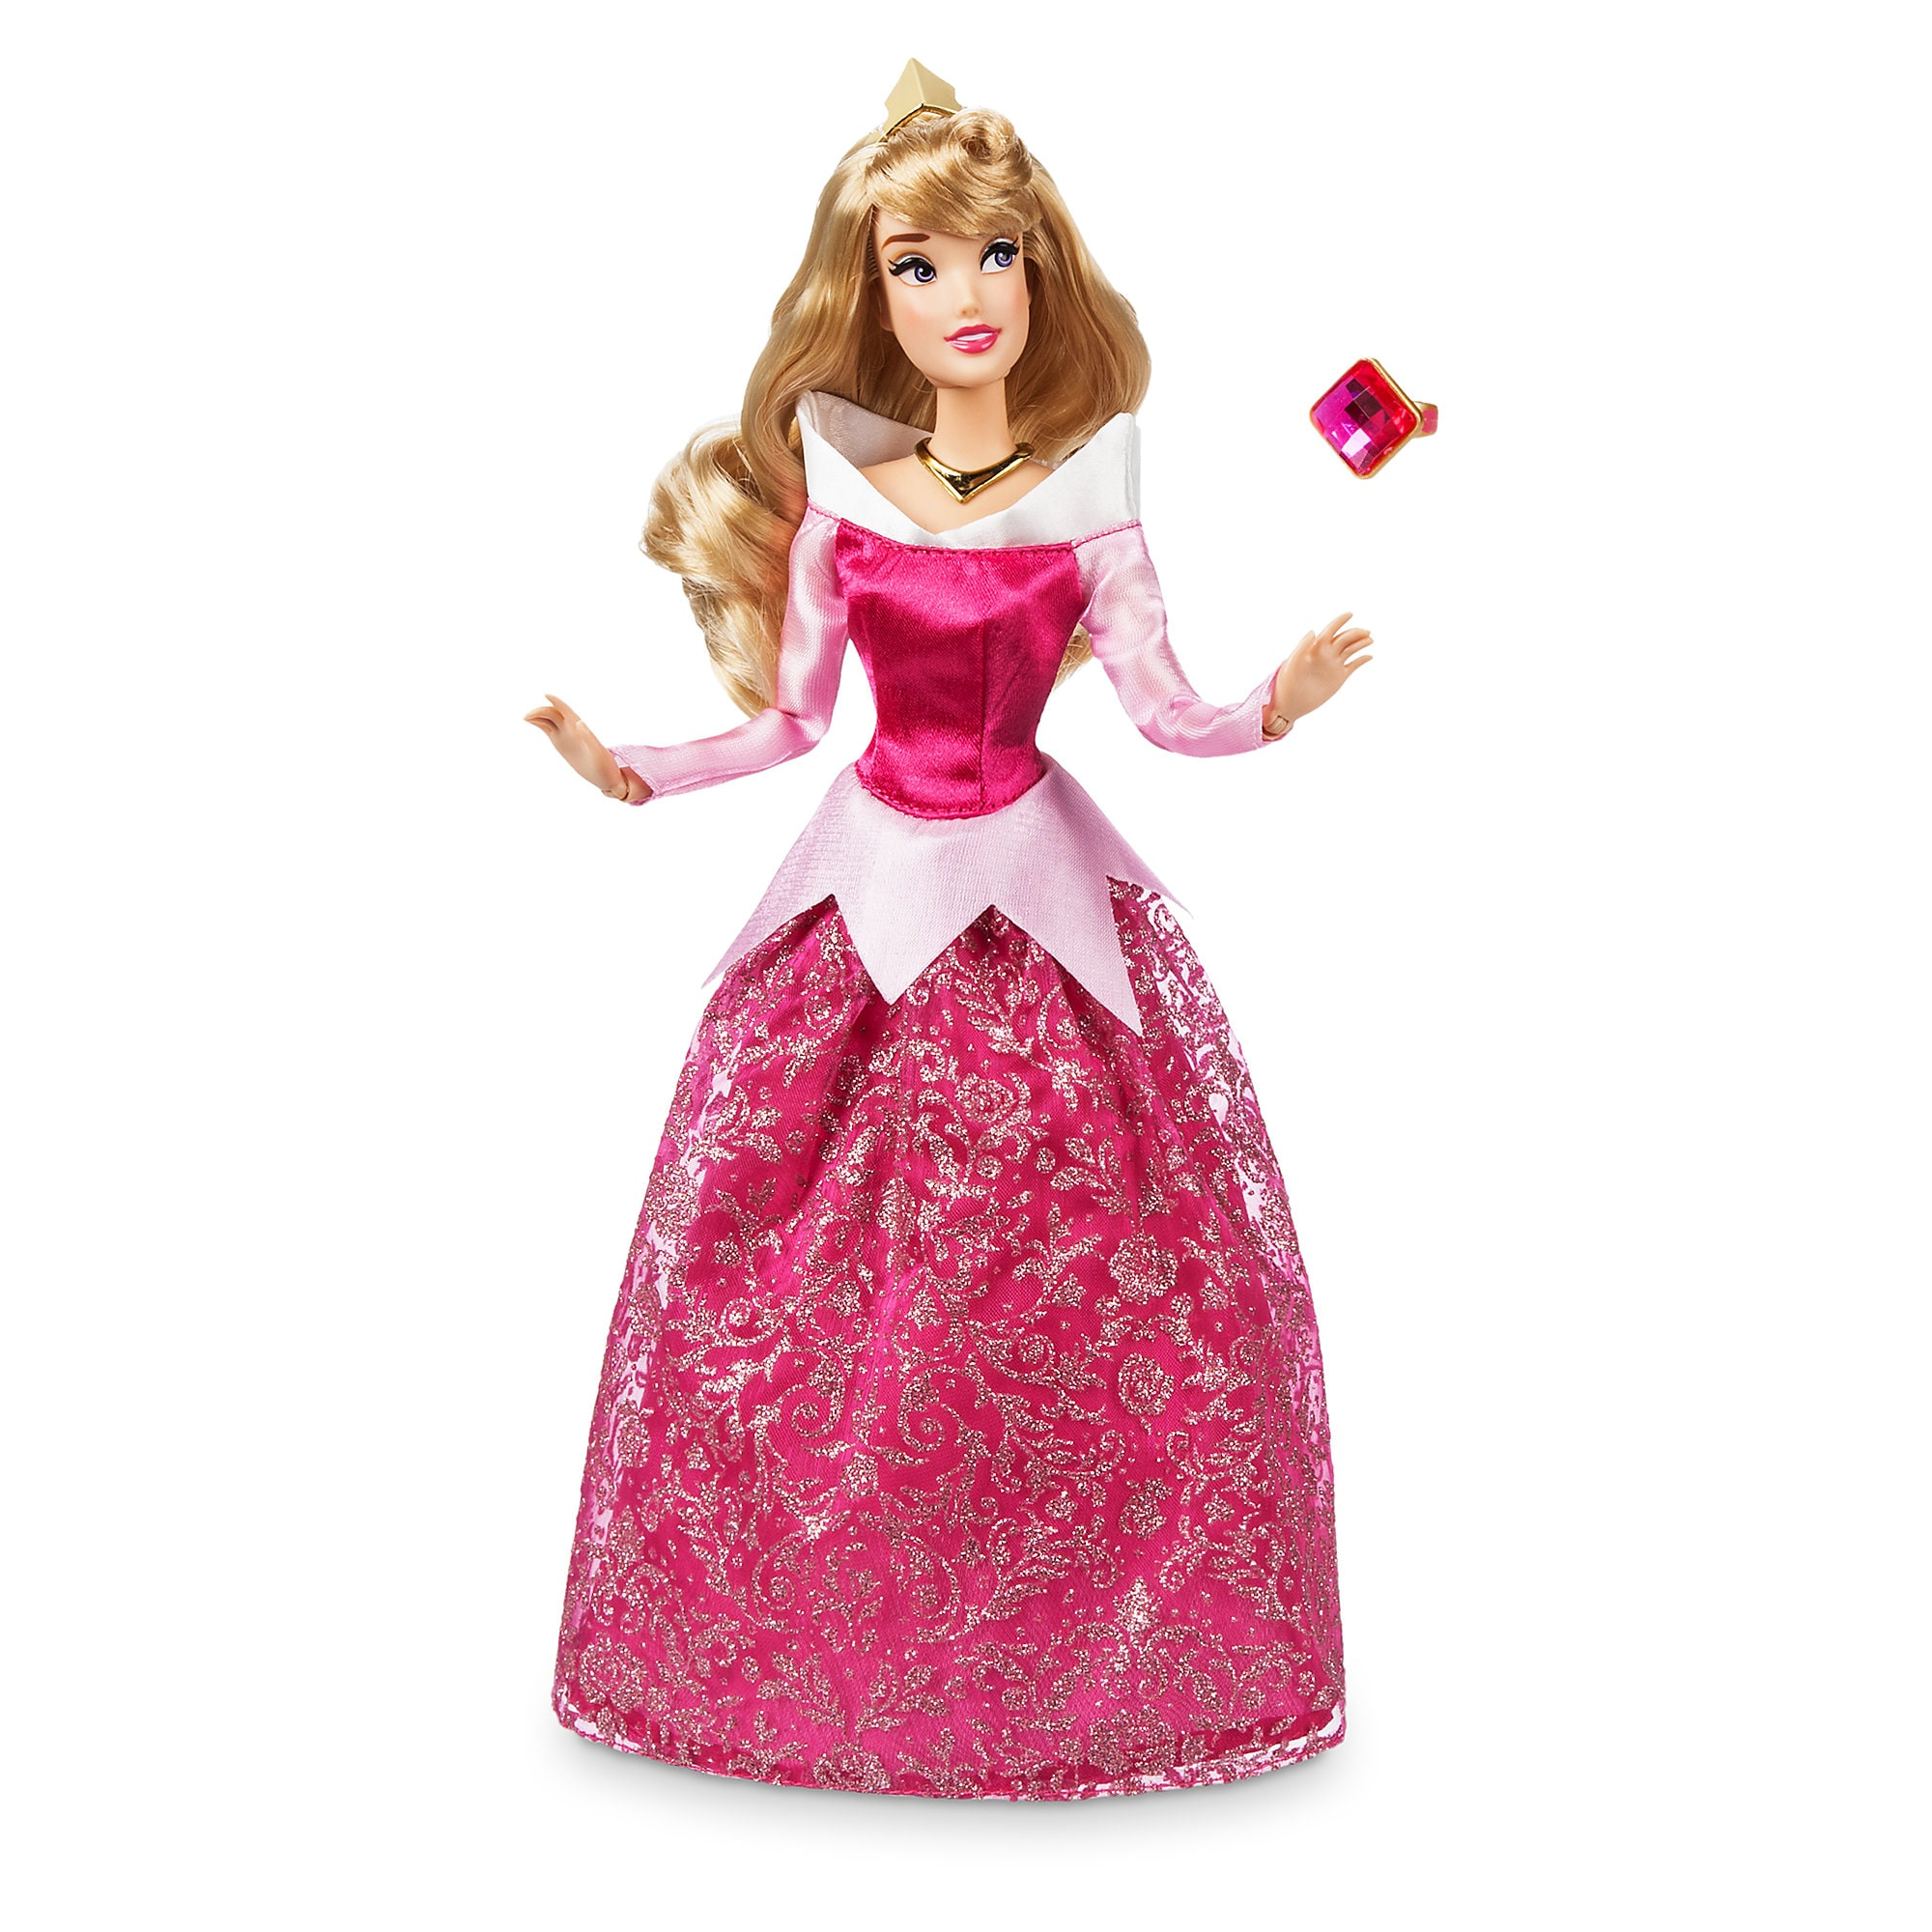 Aurora Classic Doll with Ring - Sleeping Beauty - 11 1/2''